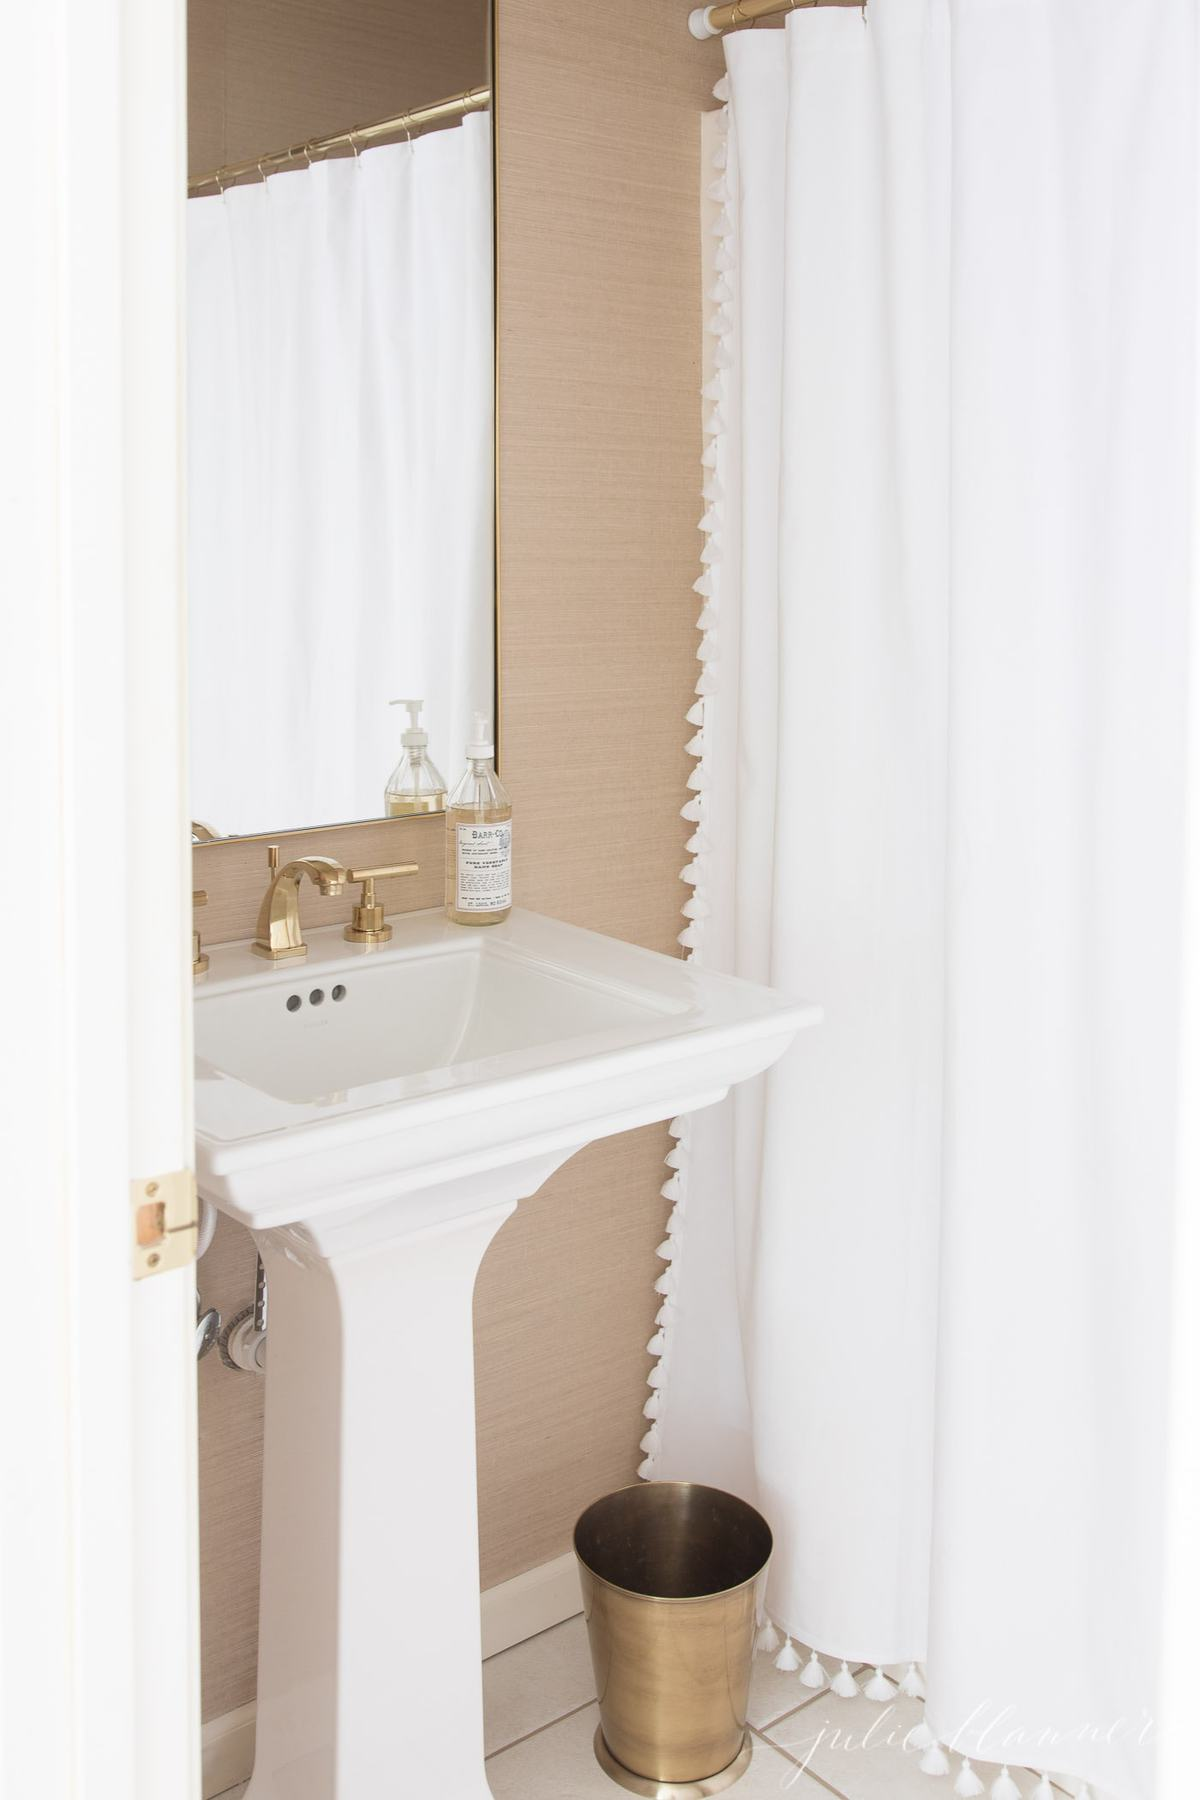 gold bathroom mirror in a bathroom with grasscloth wallpaper for vacation vibes.